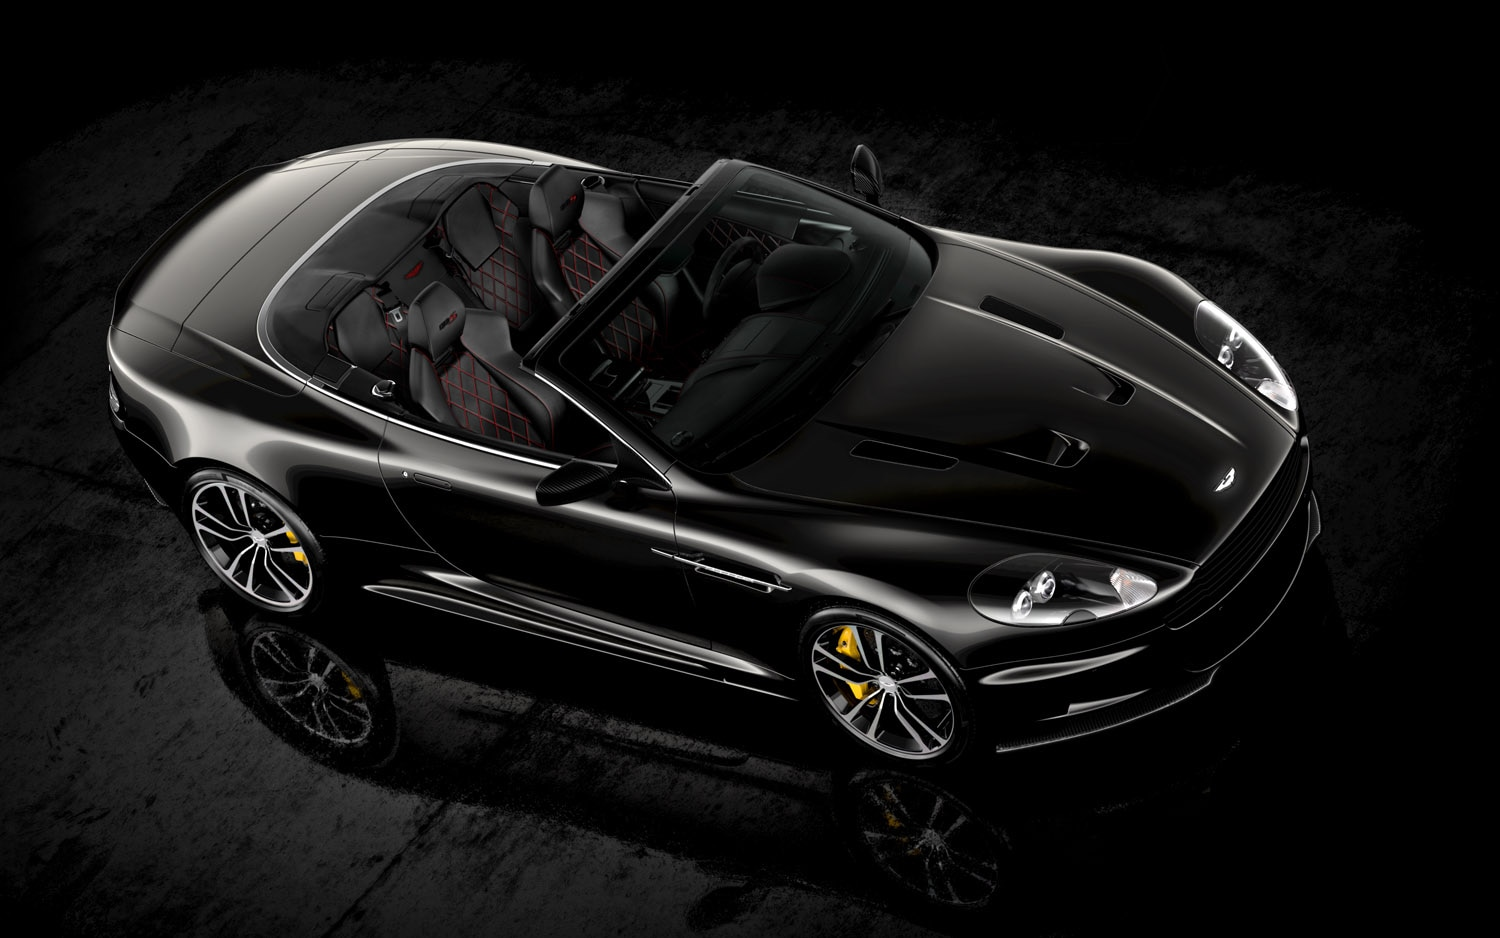 2012 Aston Martin DBS Volante Ultimate Front Three Quarter Aerial1